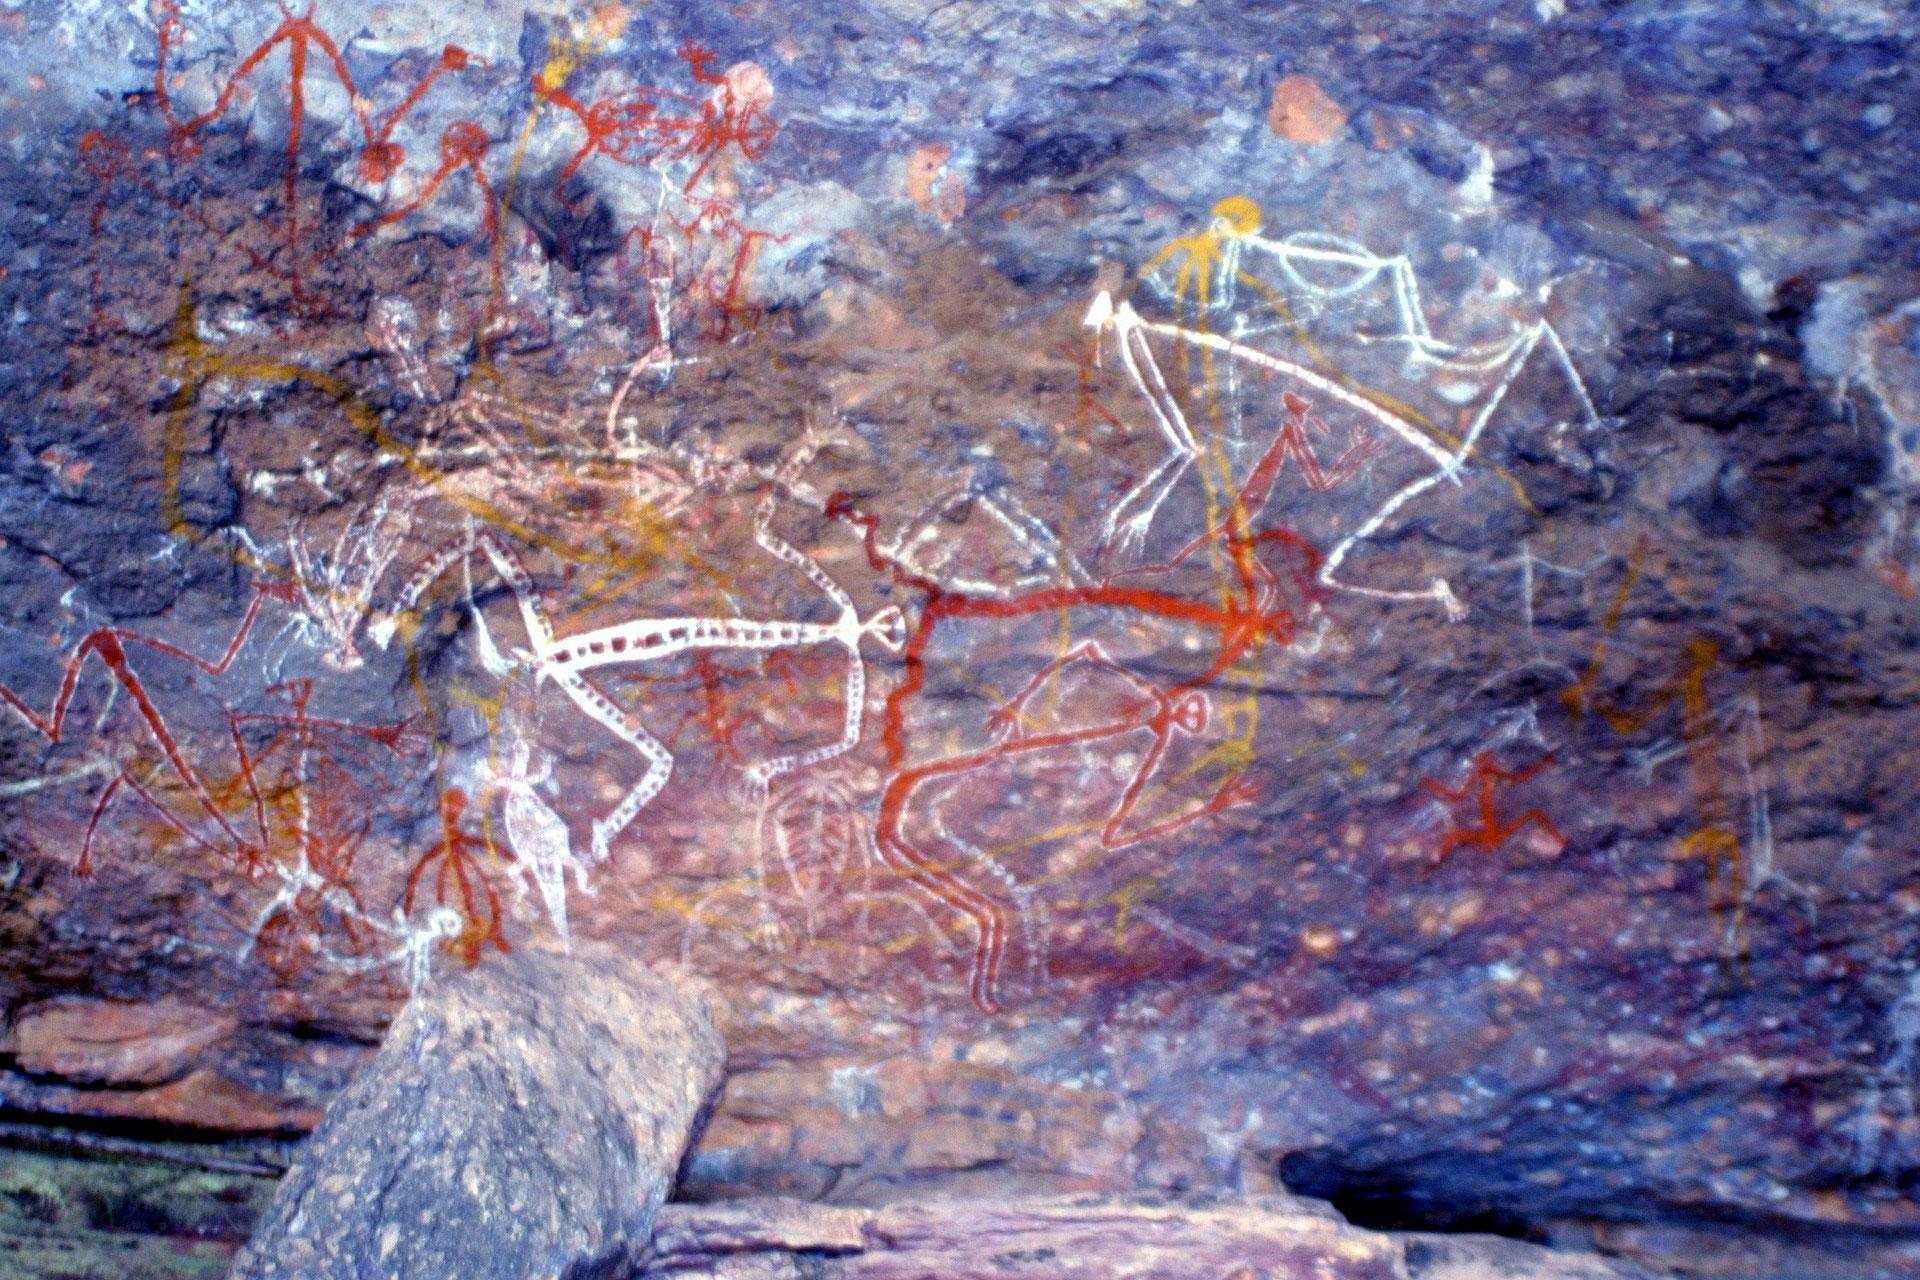 Aboriginal rock painting graphic - links to spirituality page